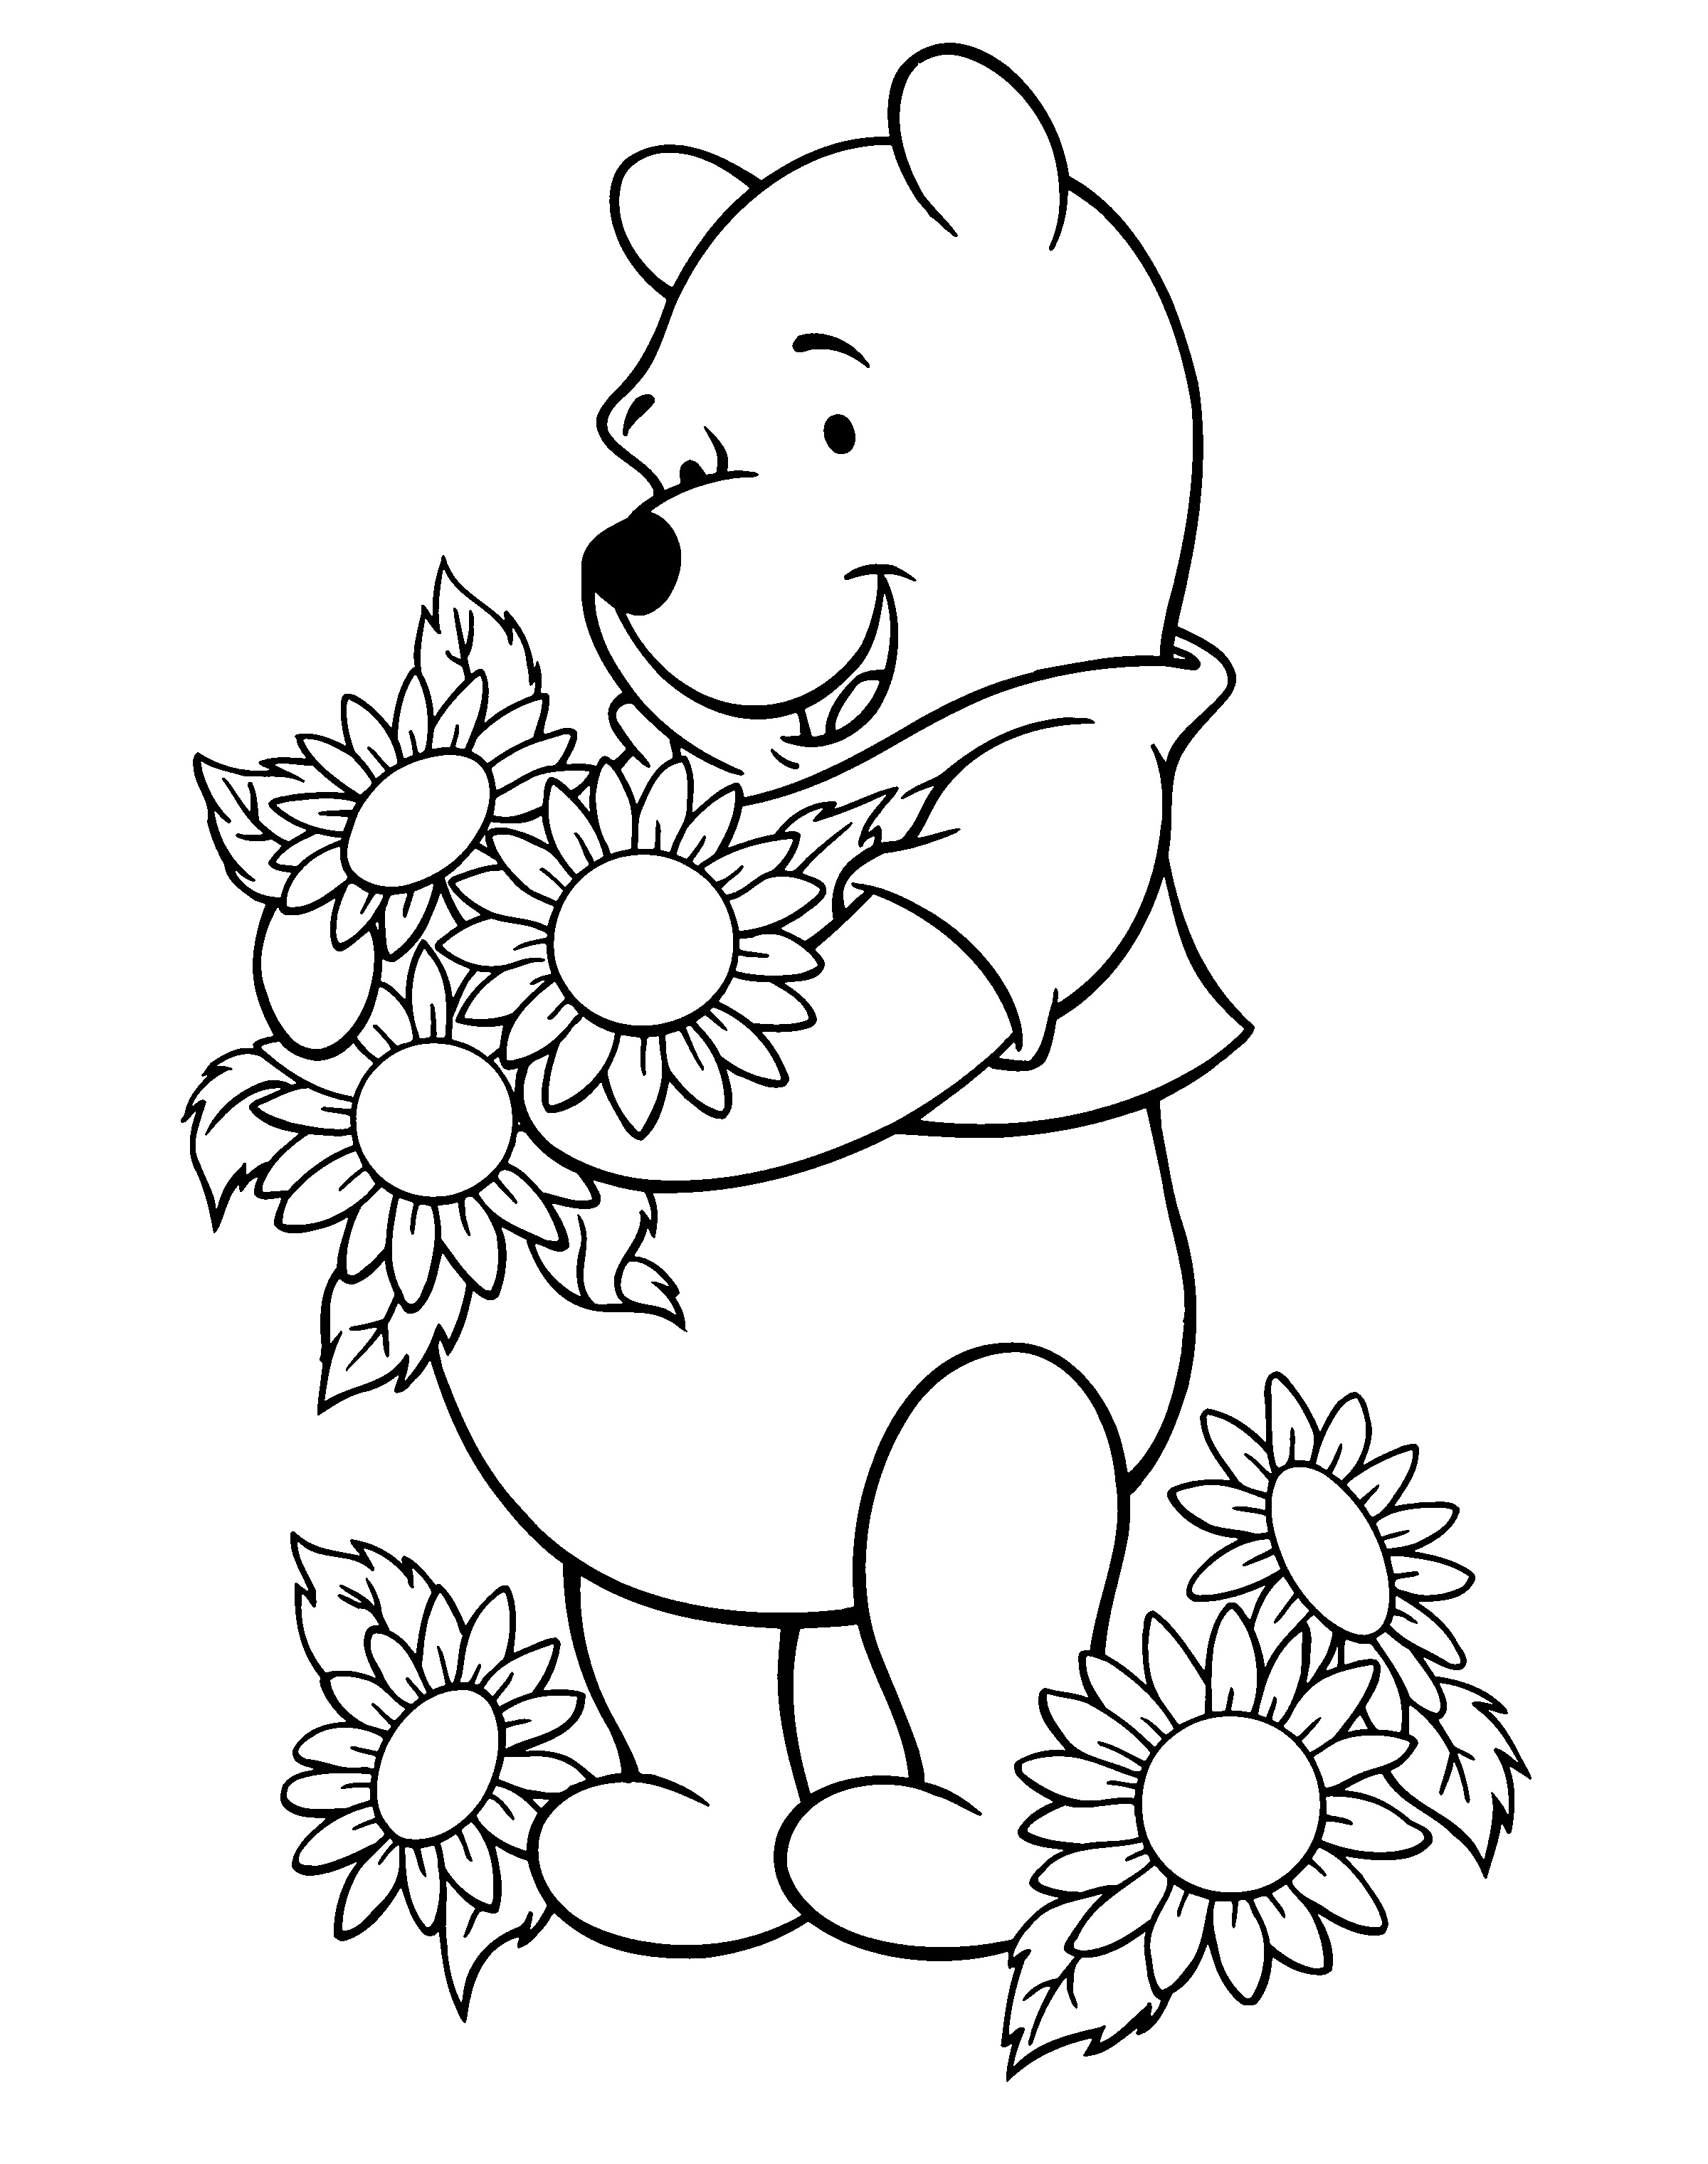 sunflower pictures to colour in sunflower coloring pages to download and print for free pictures to colour in sunflower